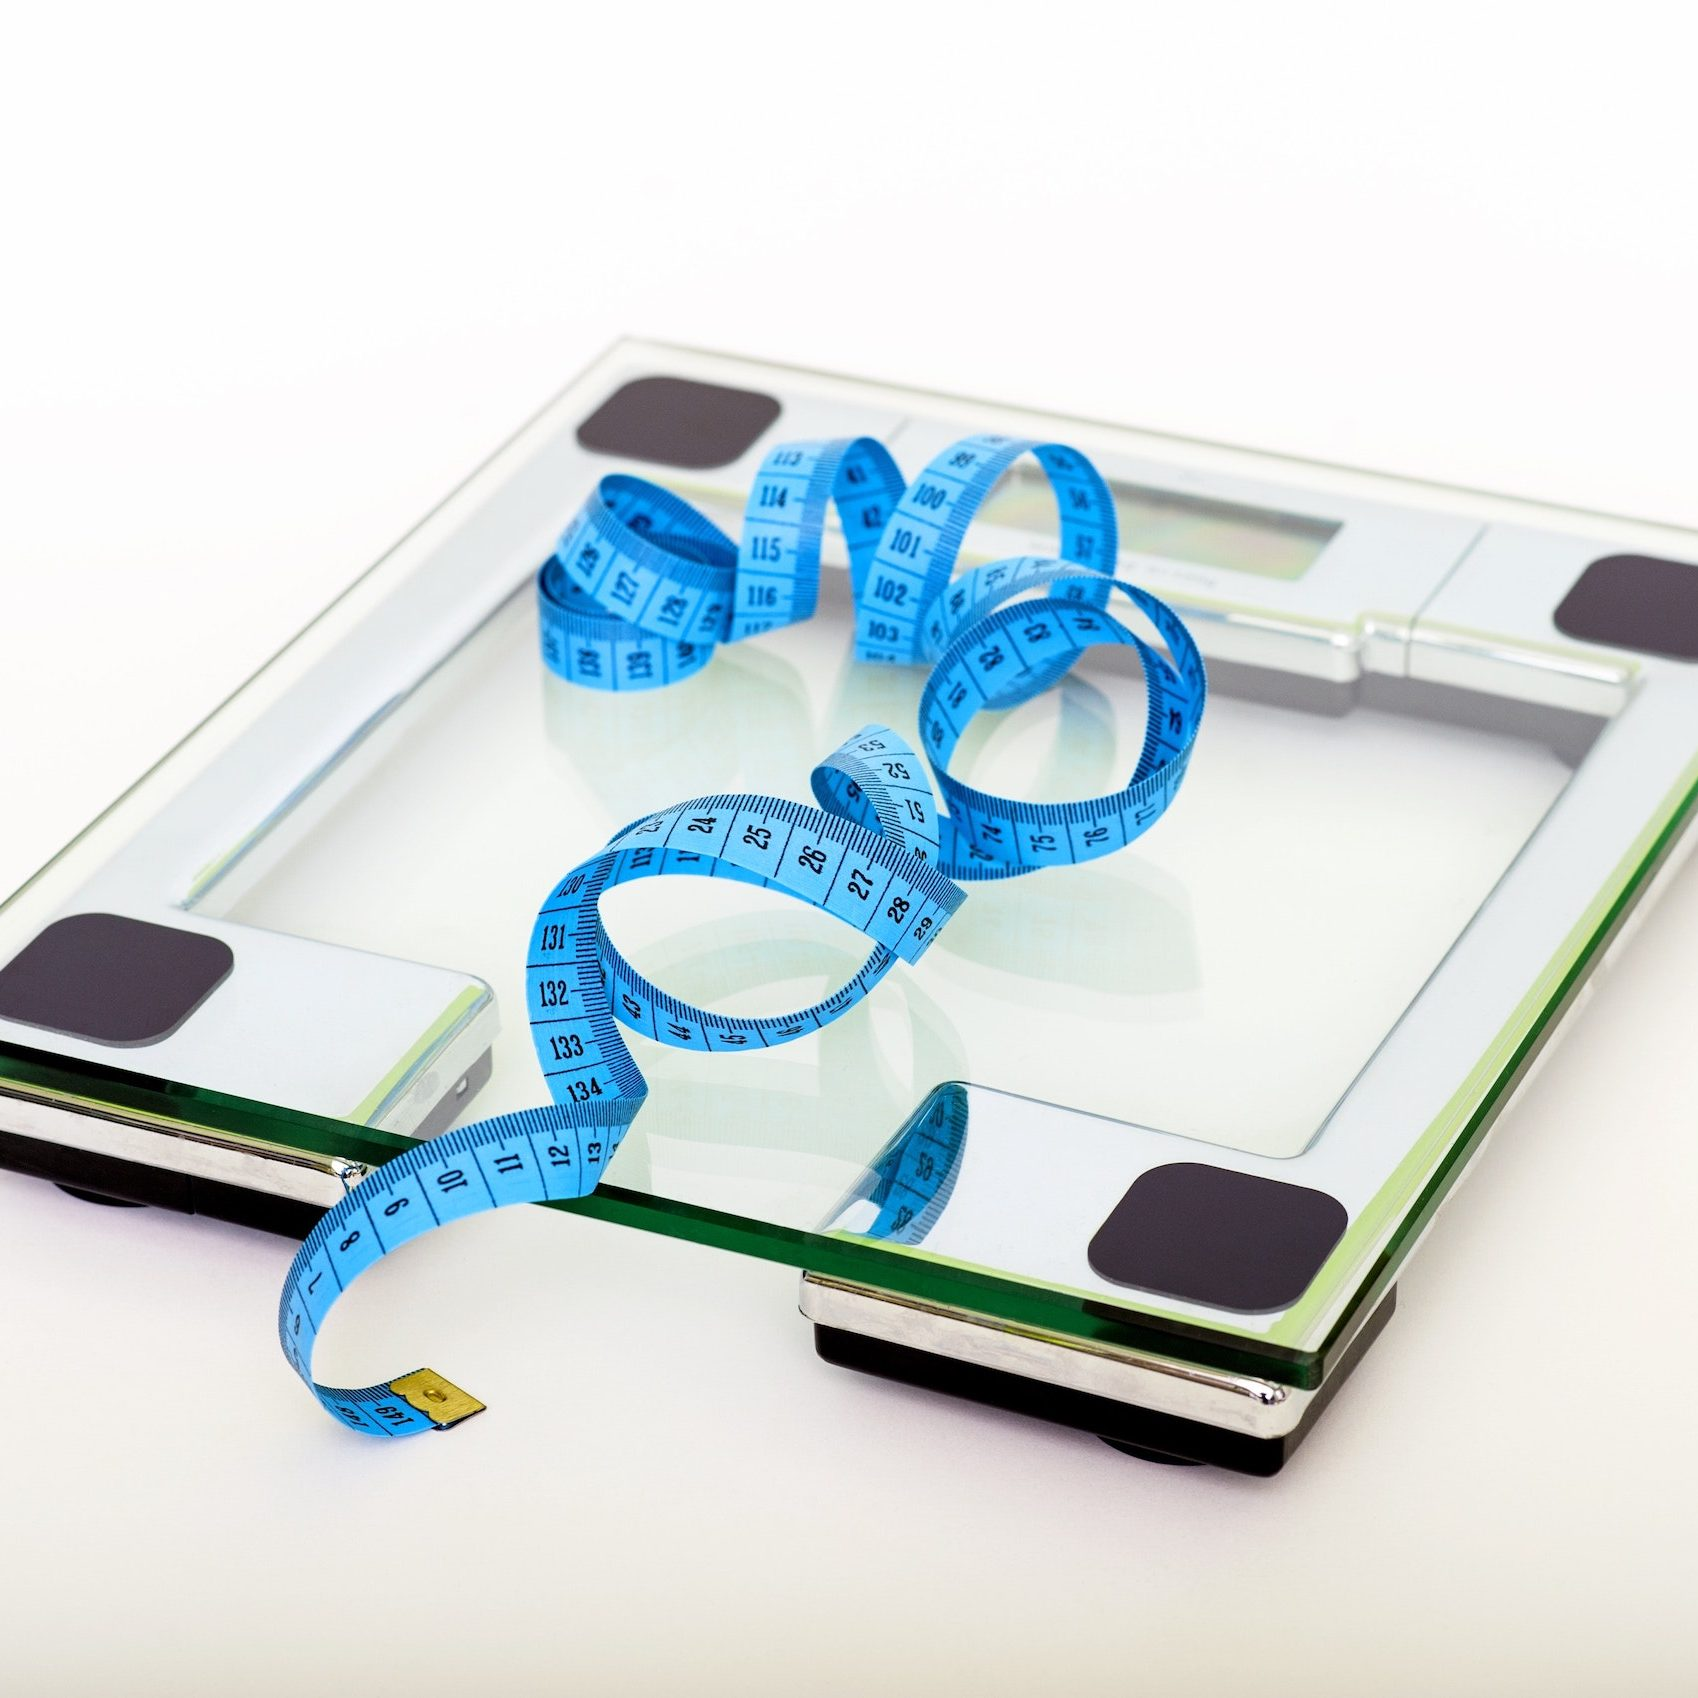 clear-device-diet-53404